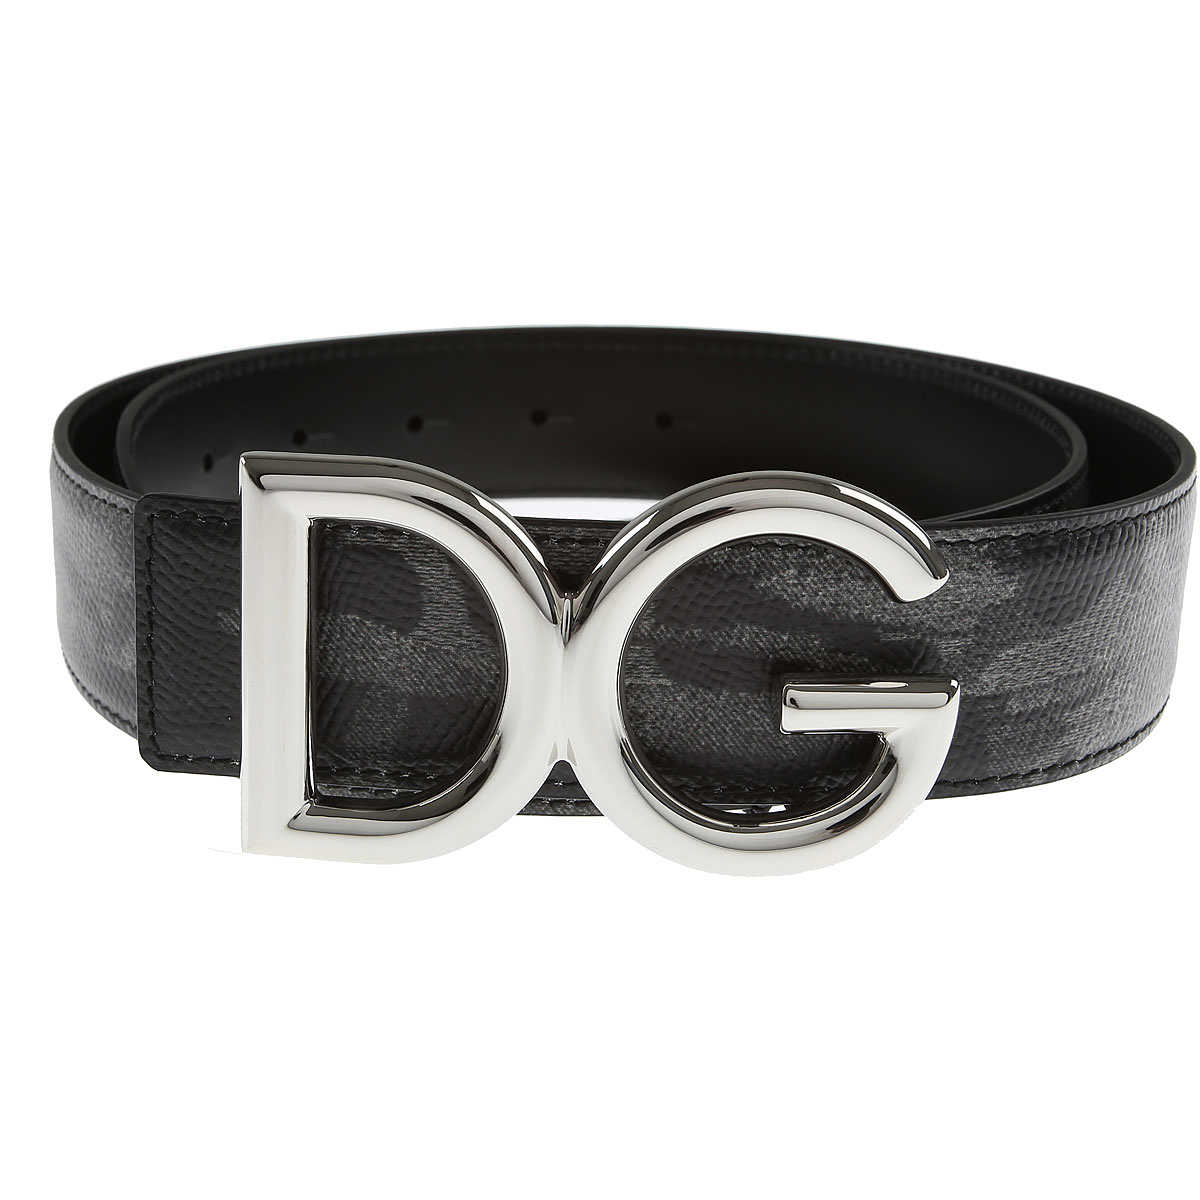 Dolce & Gabbana Mens Belts On Sale Camouflage Grey - GOOFASH